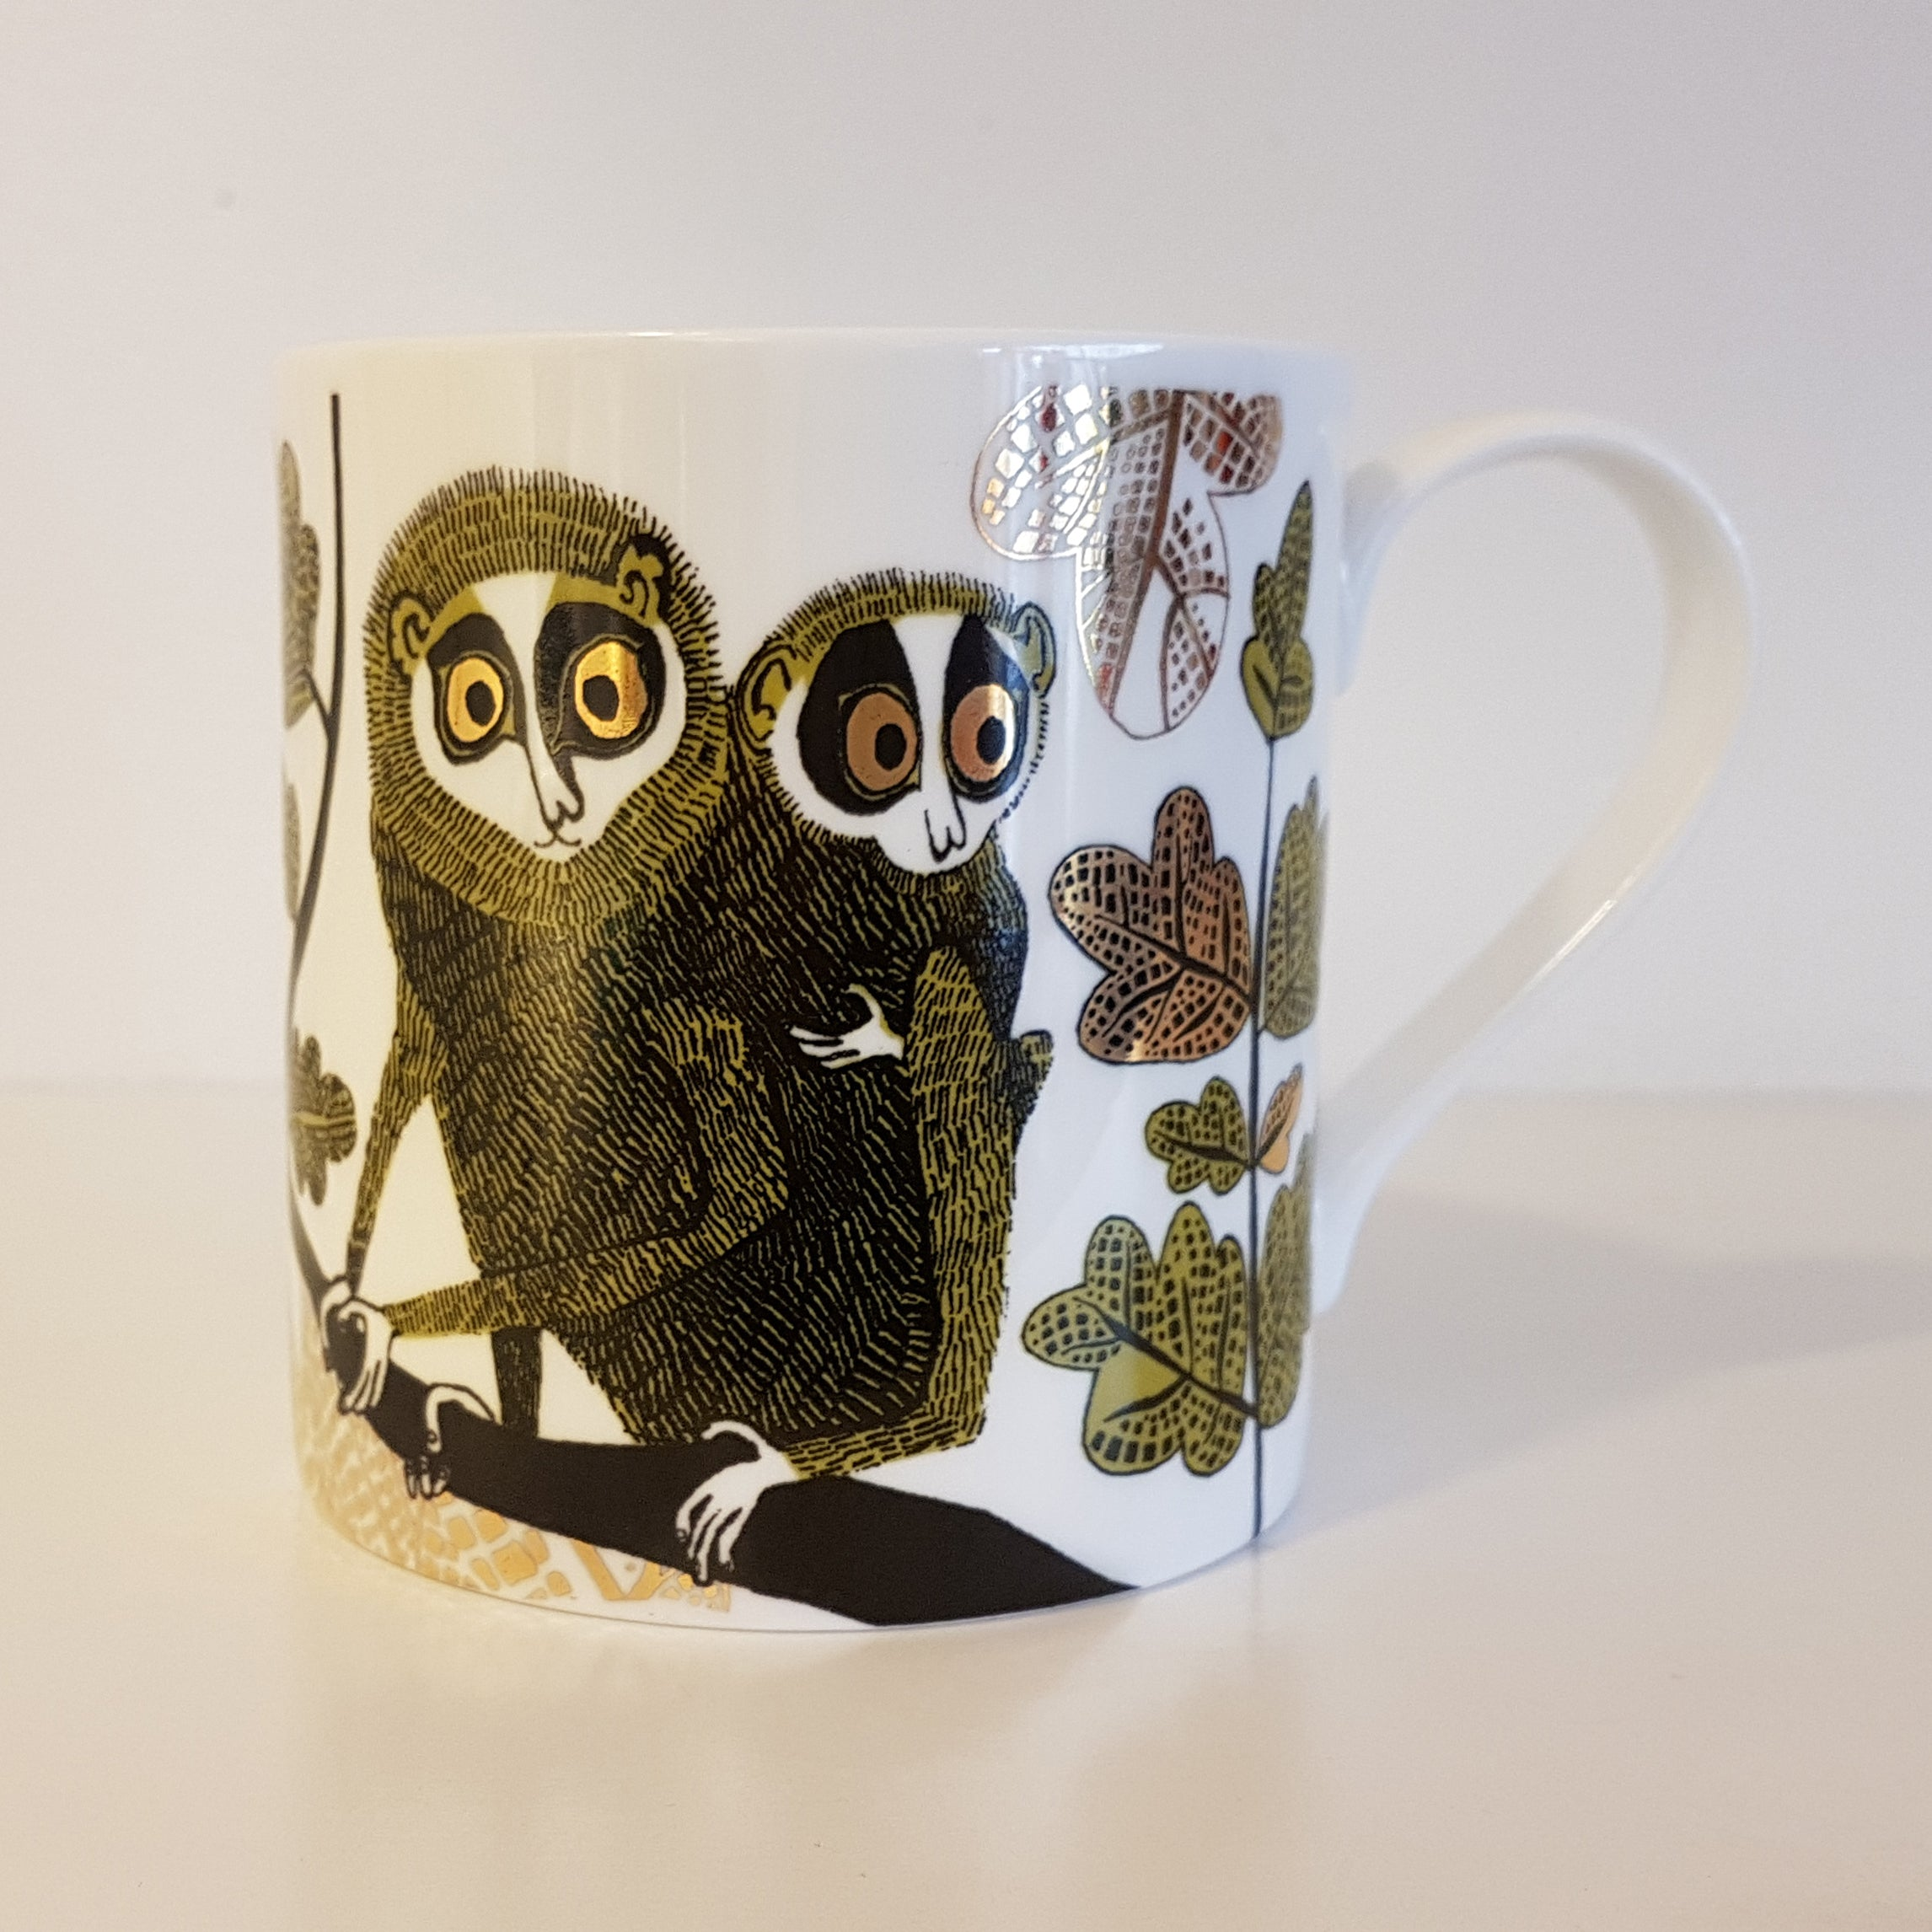 Lush Designs China mug with design of Loris and baby